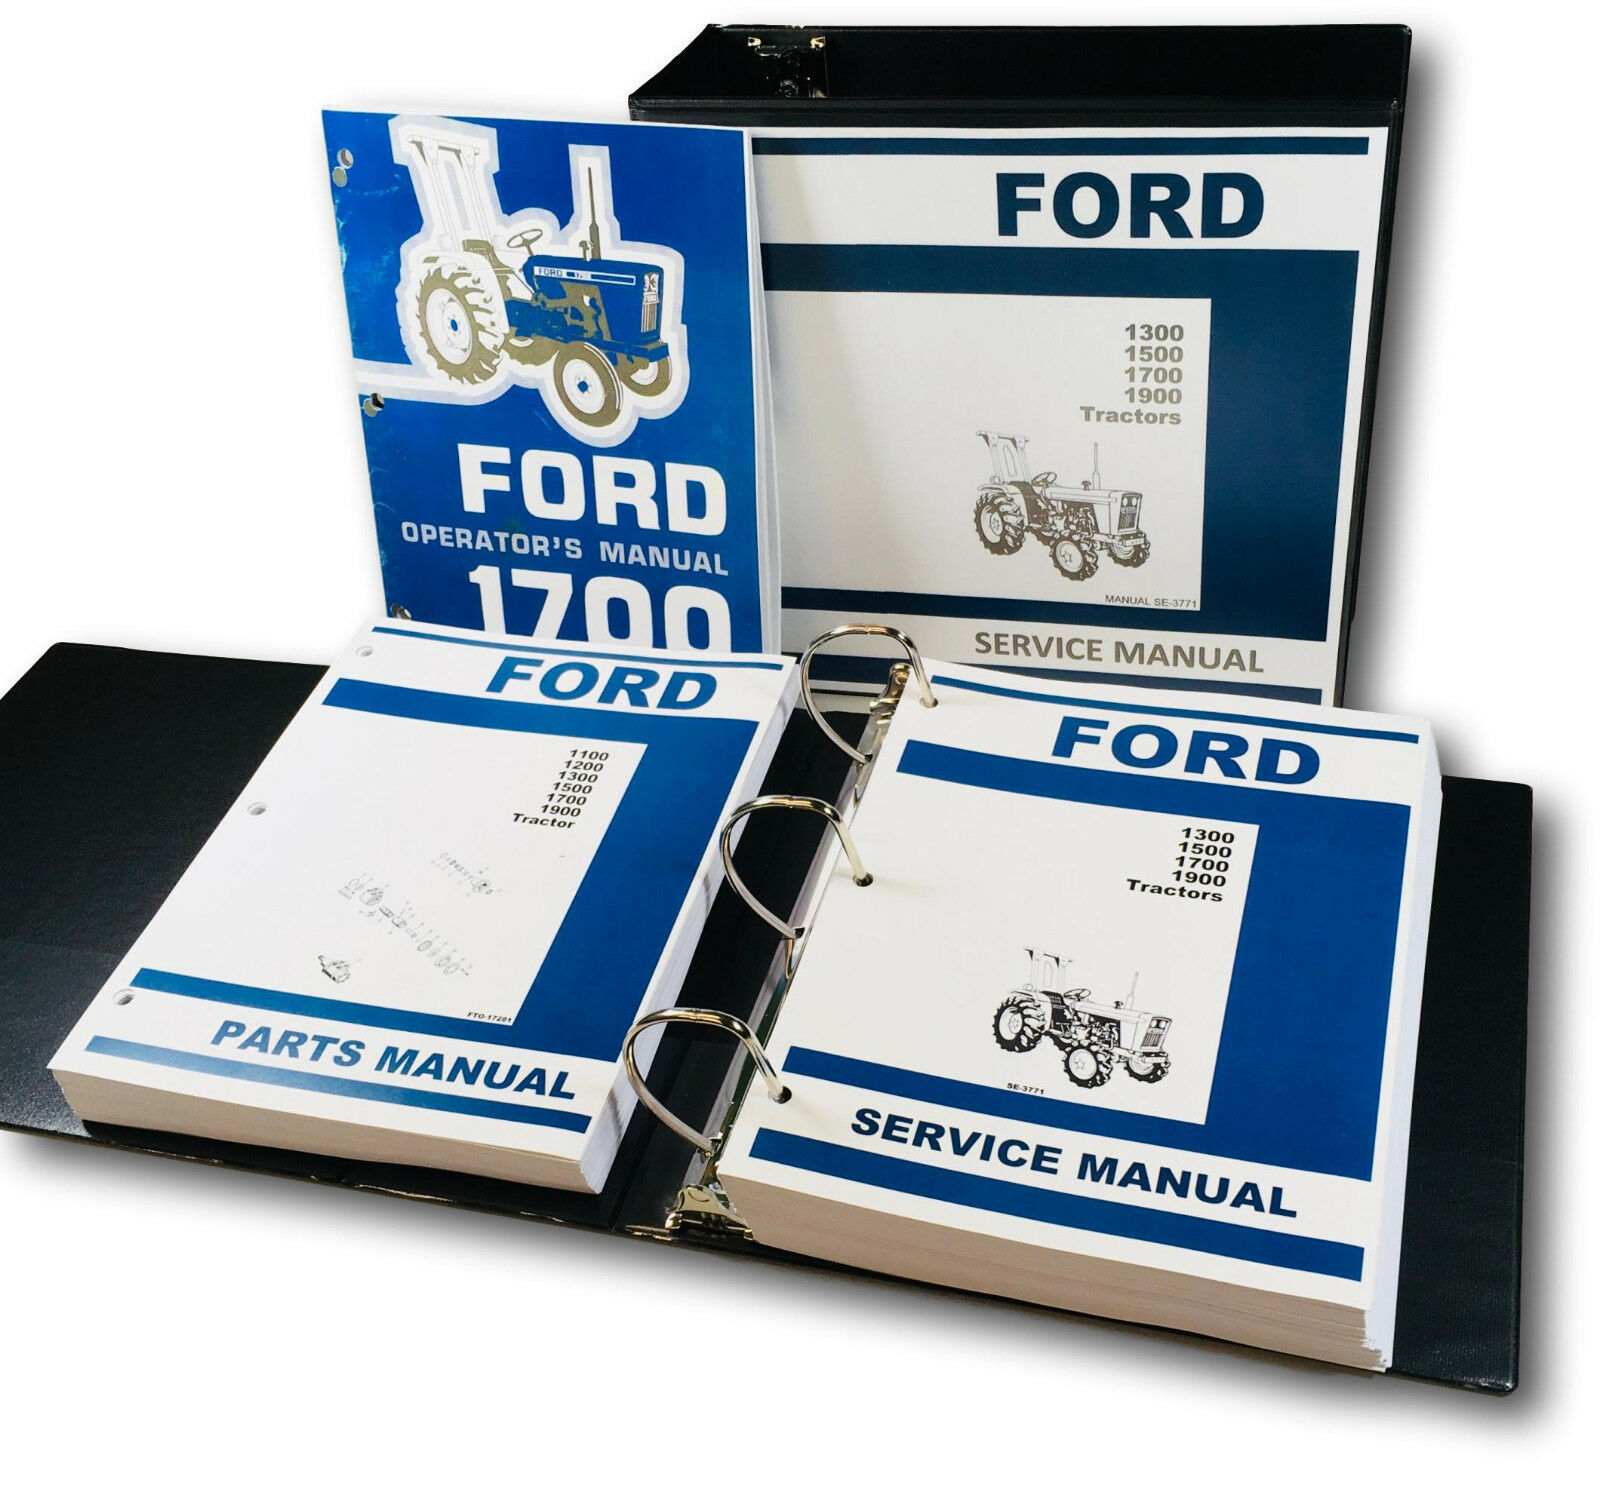 ... Ford 1700 Tractors. Complete Repair/Overhaul/Parts and Operations